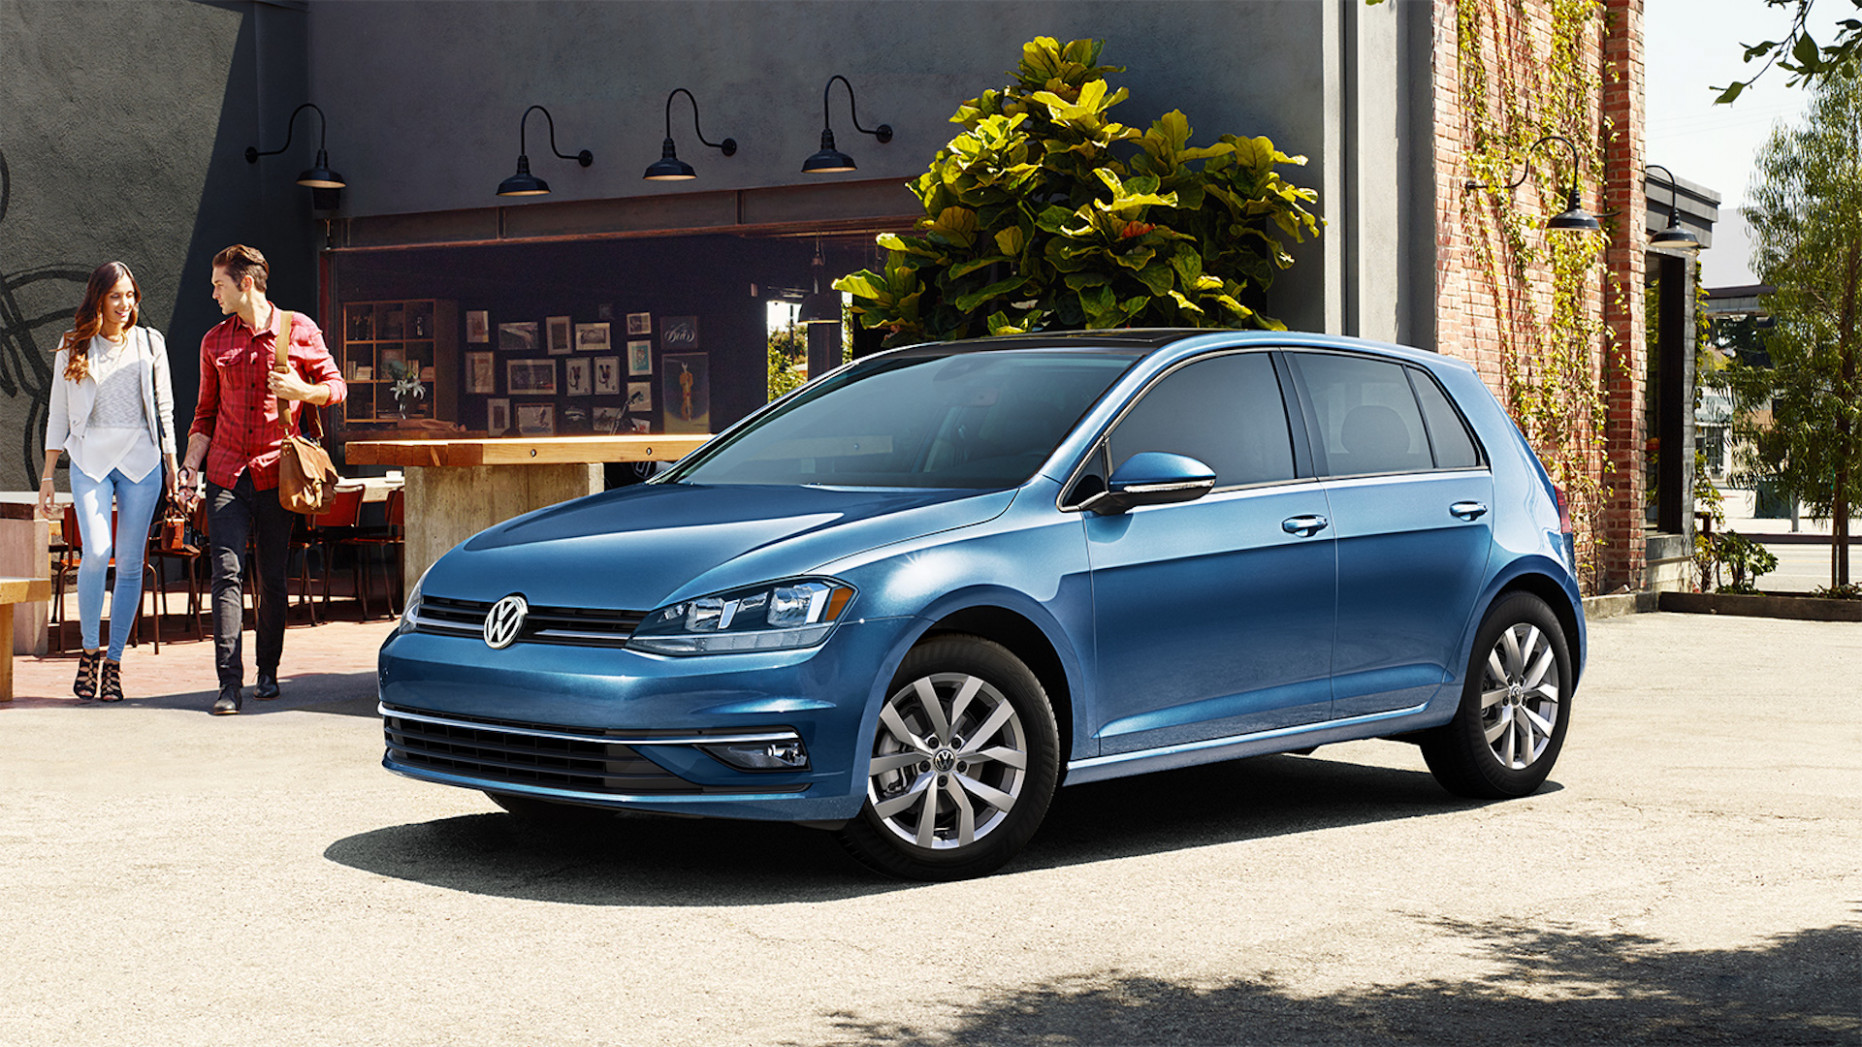 8 Volkswagen Golf (VW) Review, Ratings, Specs, Prices, and ..